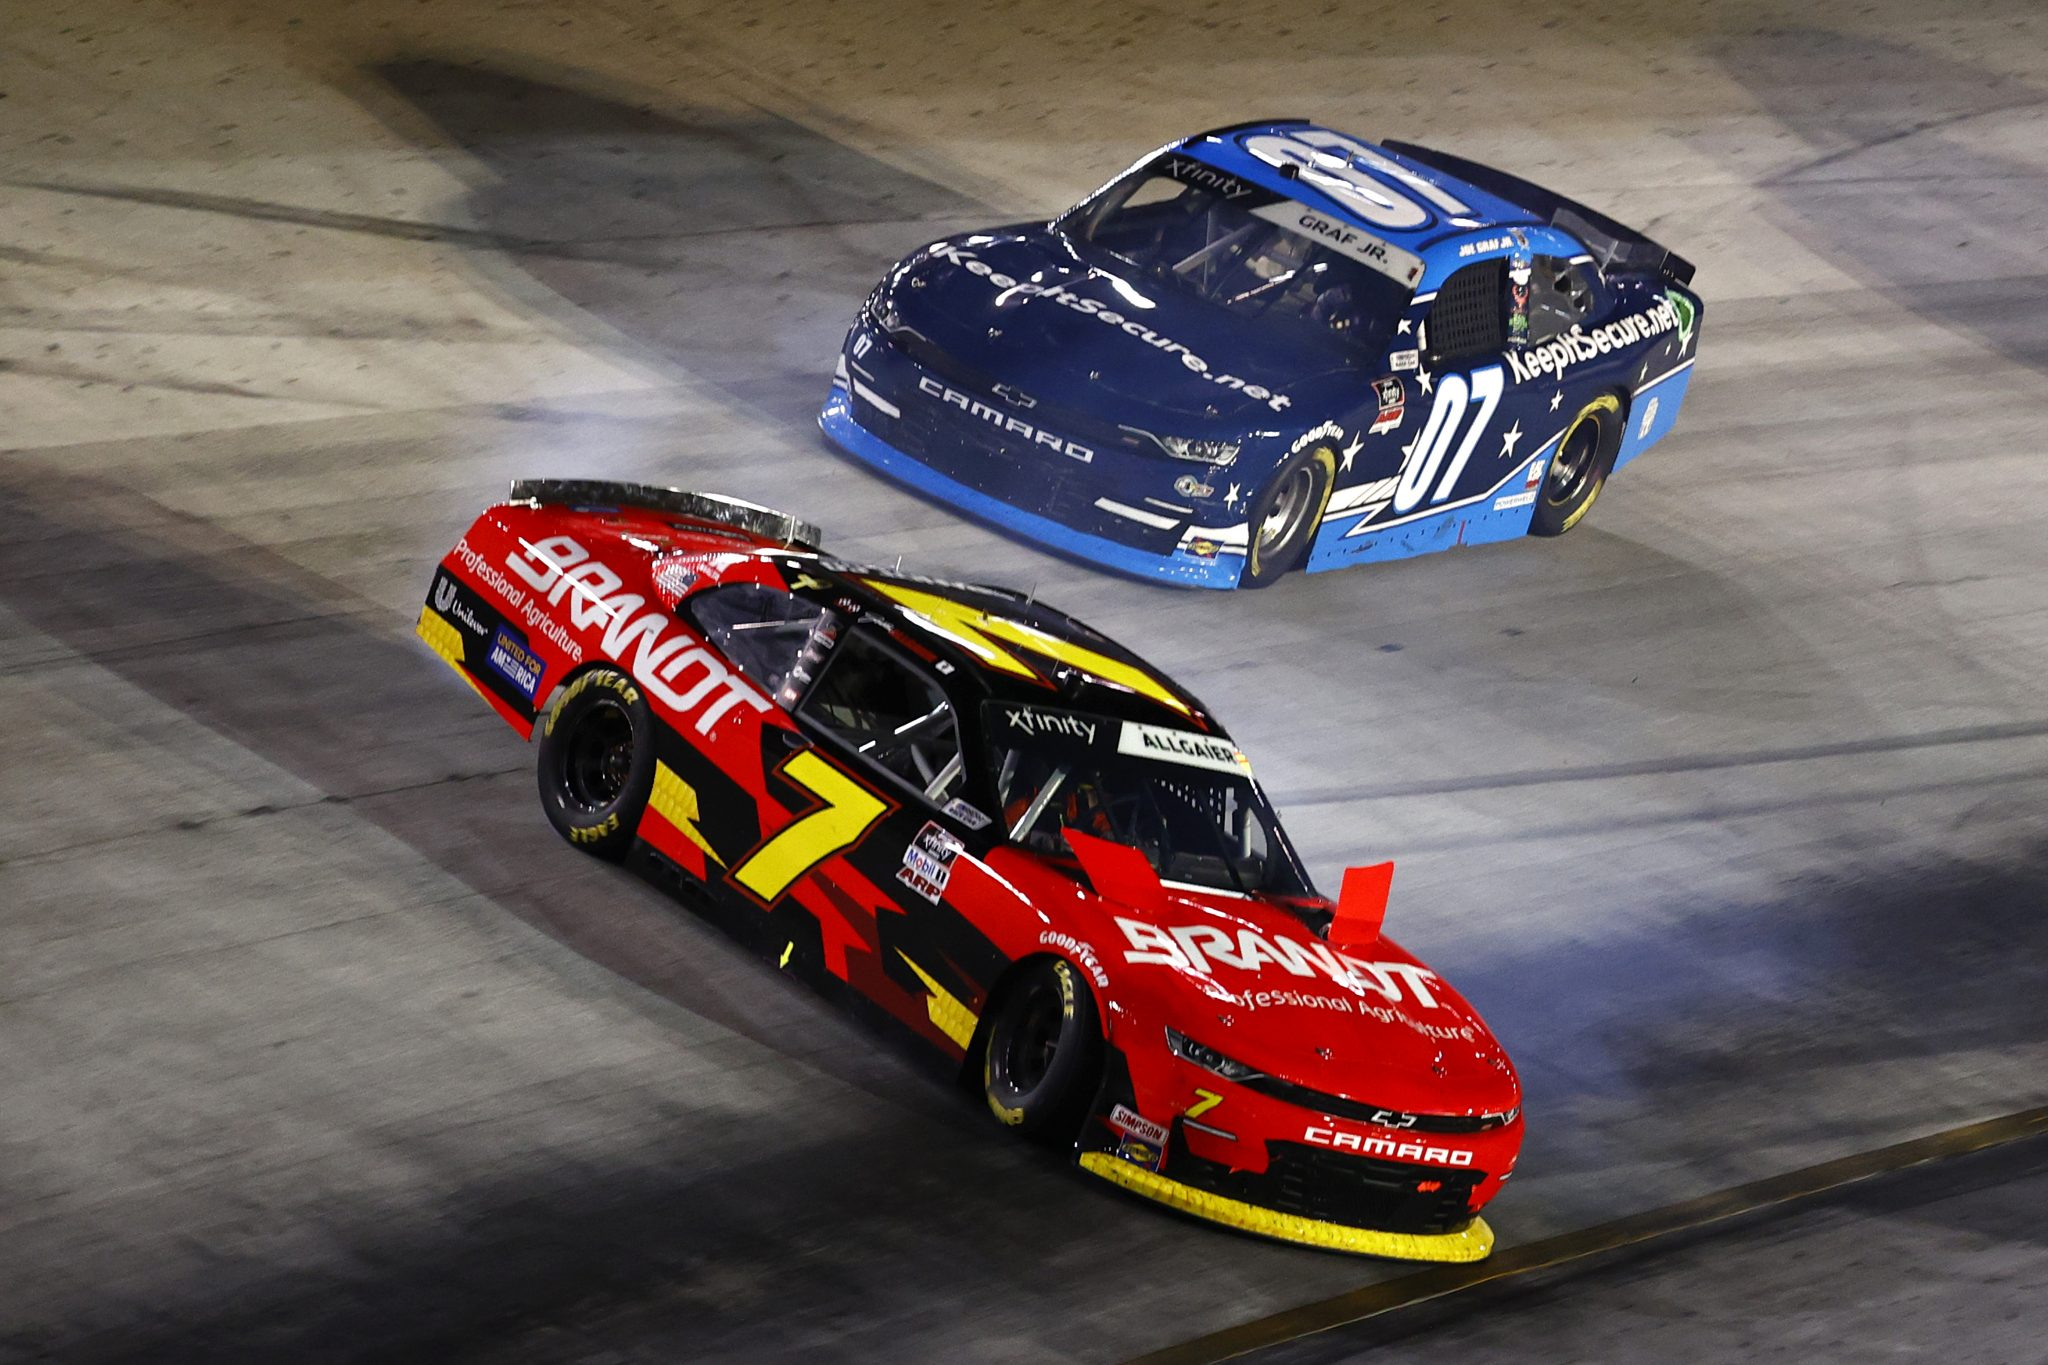 BRISTOL, TENNESSEE - SEPTEMBER 17: Justin Allgaier, driver of the #7 BRANDT Chevrolet, spins in front of Joe Graf Jr., driver of the #07 KeepItSecure.net Chevrolet, during the NASCAR Xfinity Series Food City 300 at Bristol Motor Speedway on September 17, 2021 in Bristol, Tennessee. (Photo by Jared C. Tilton/Getty Images) | Getty Images